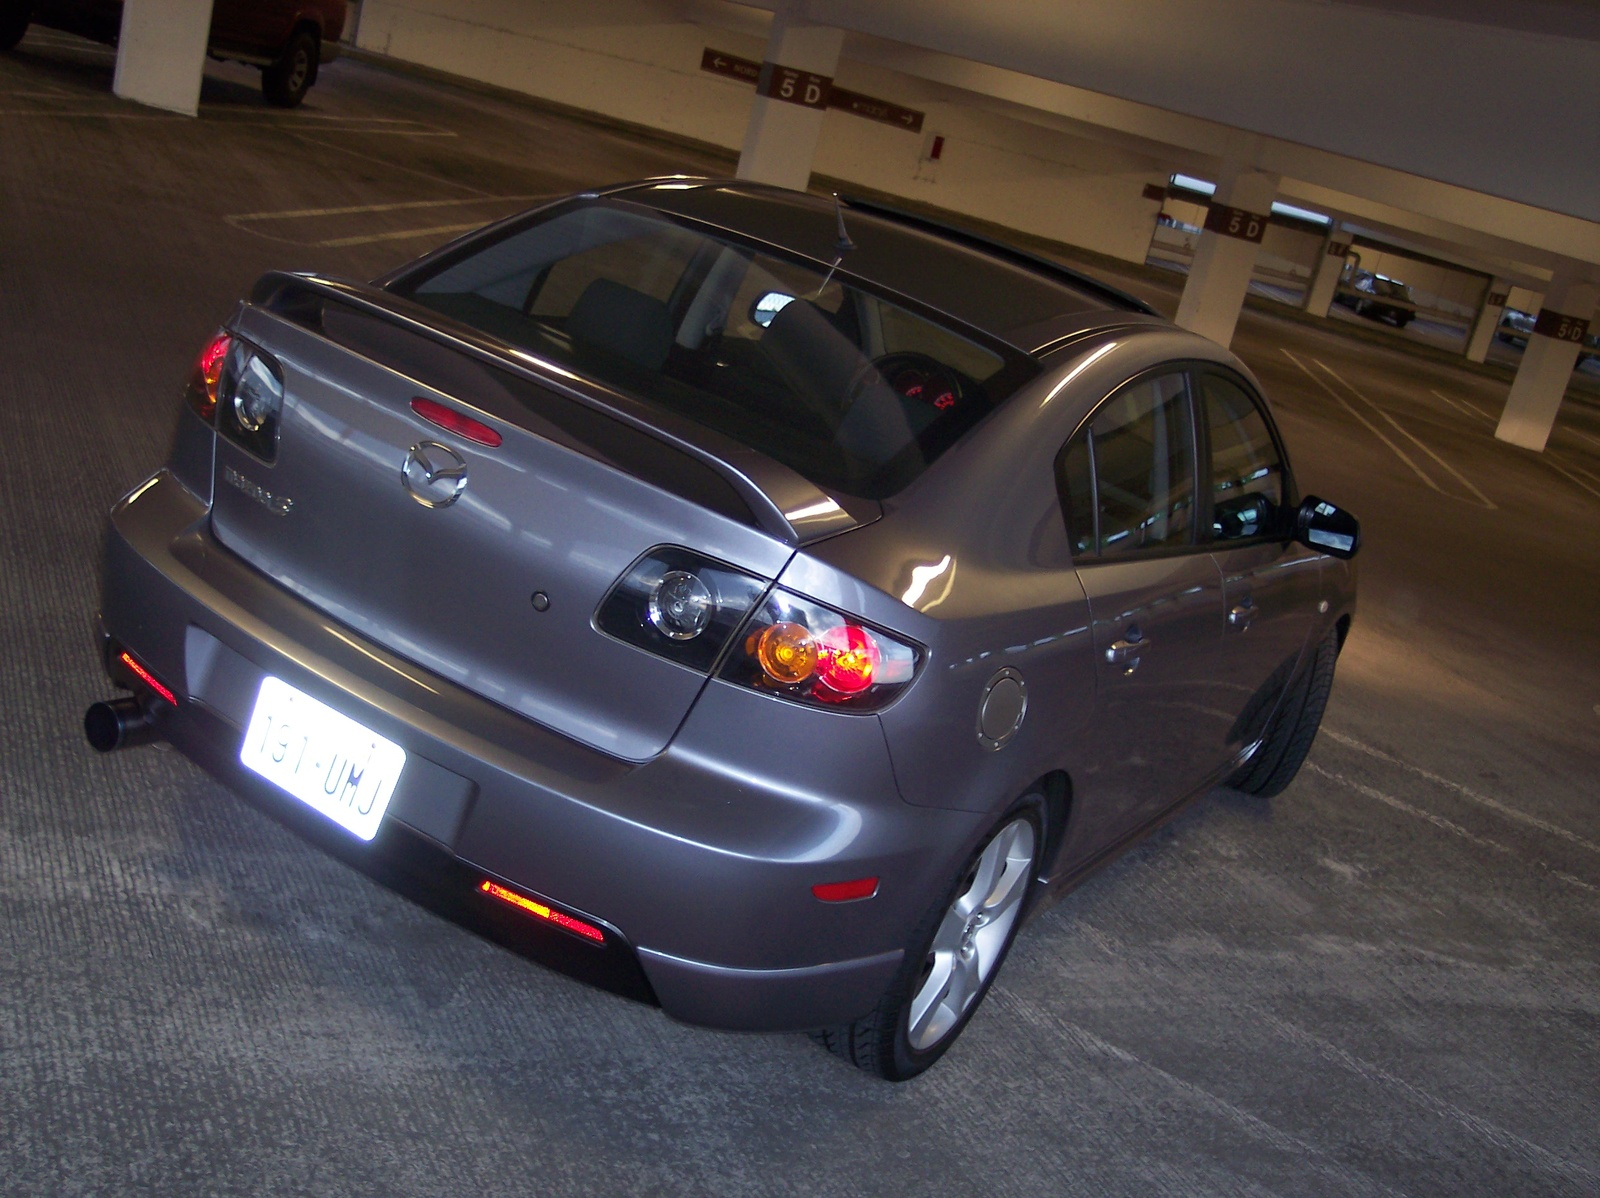 2006 Mazda Mazda3 S Touring Much More Attractive Than Other Small